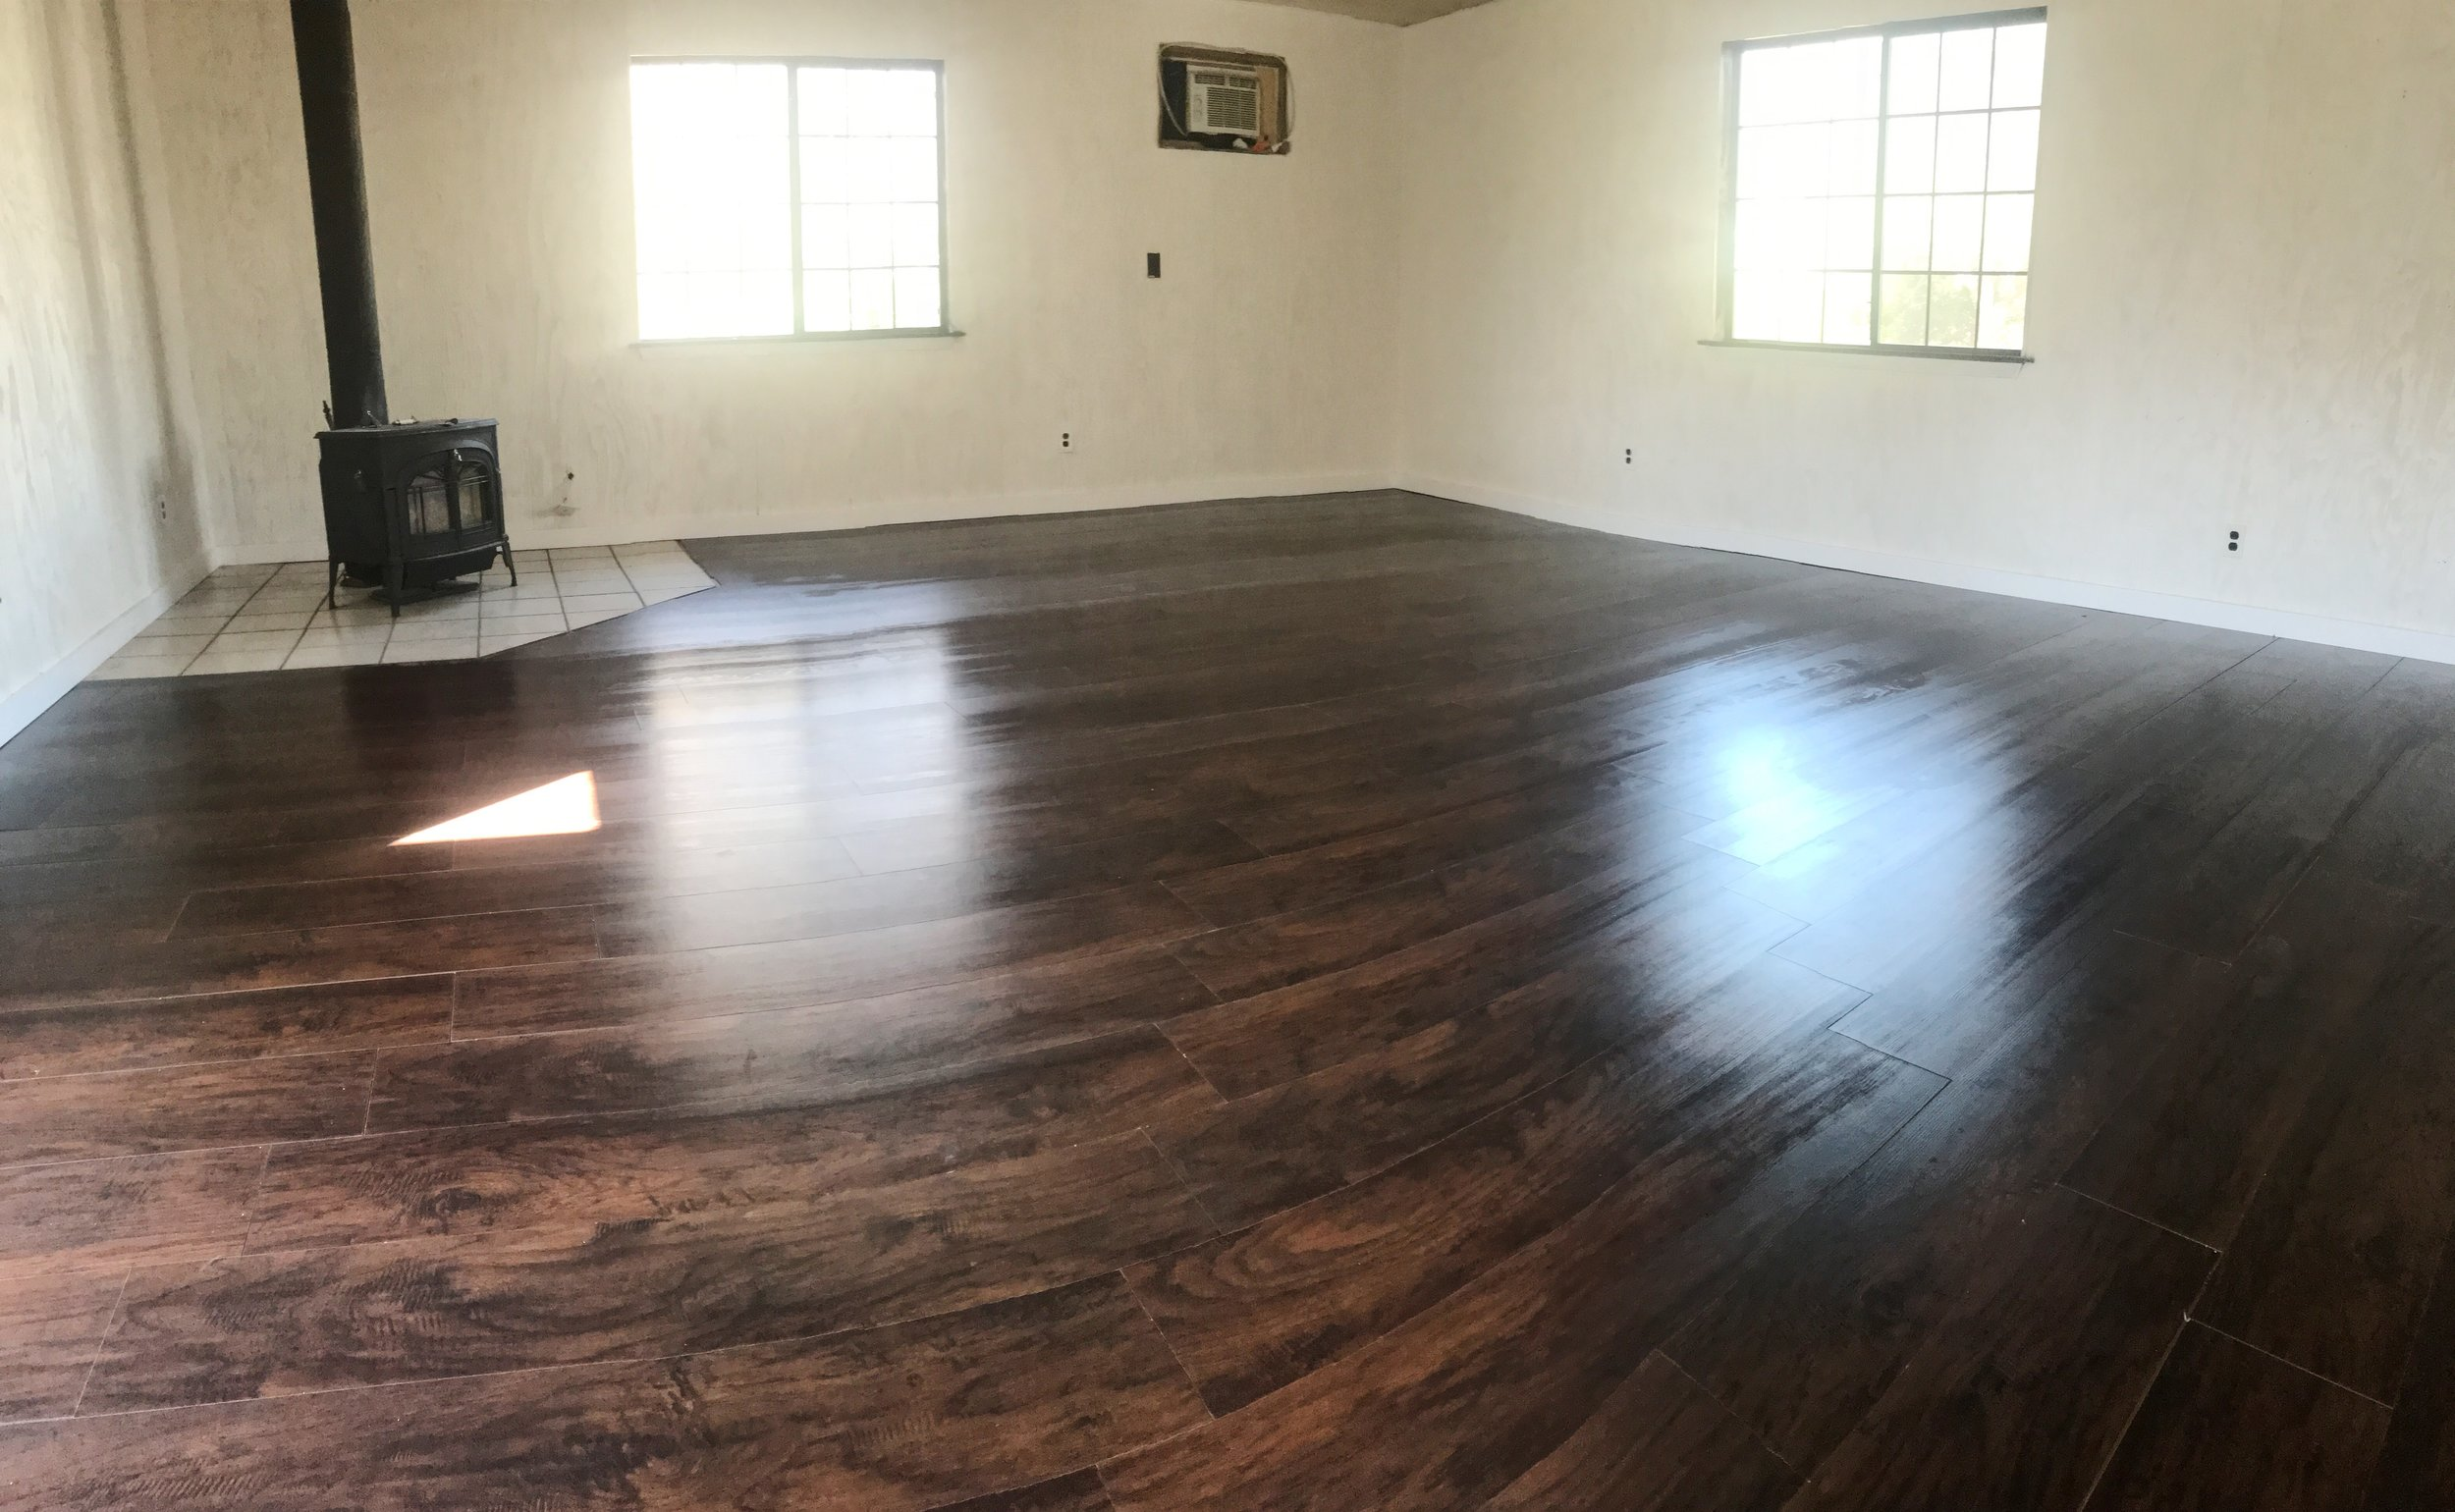 Laying wood laminate flooring saves a lot of money, but is a HUGE pain.